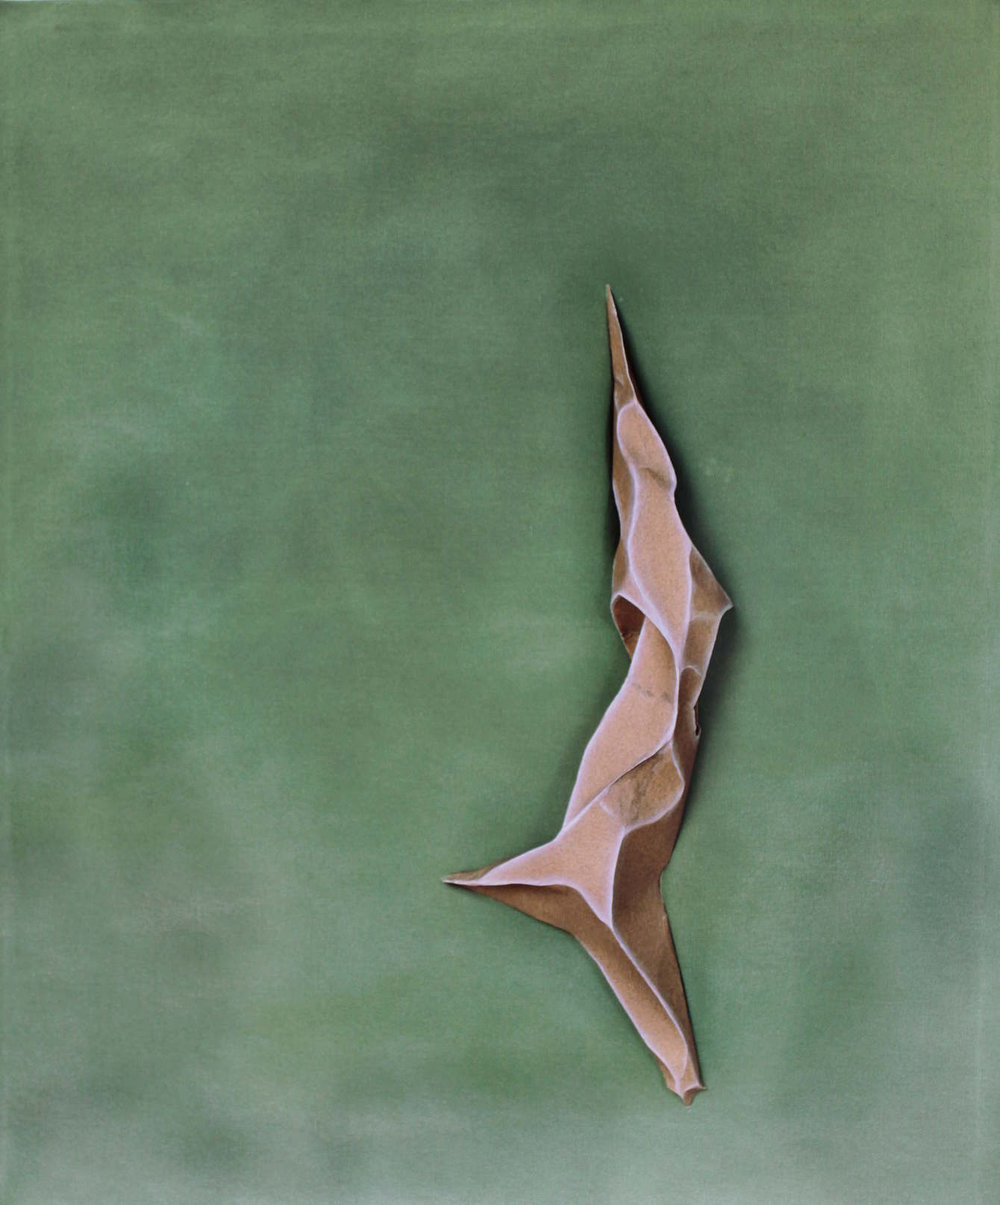 """Evergreen"" , 2015  Sandpaper, dry pigment and acrylic on canvas, 33"" × 27"" × 4""  Courtesy Sarah E.Brook and Carrie Able Gallery"